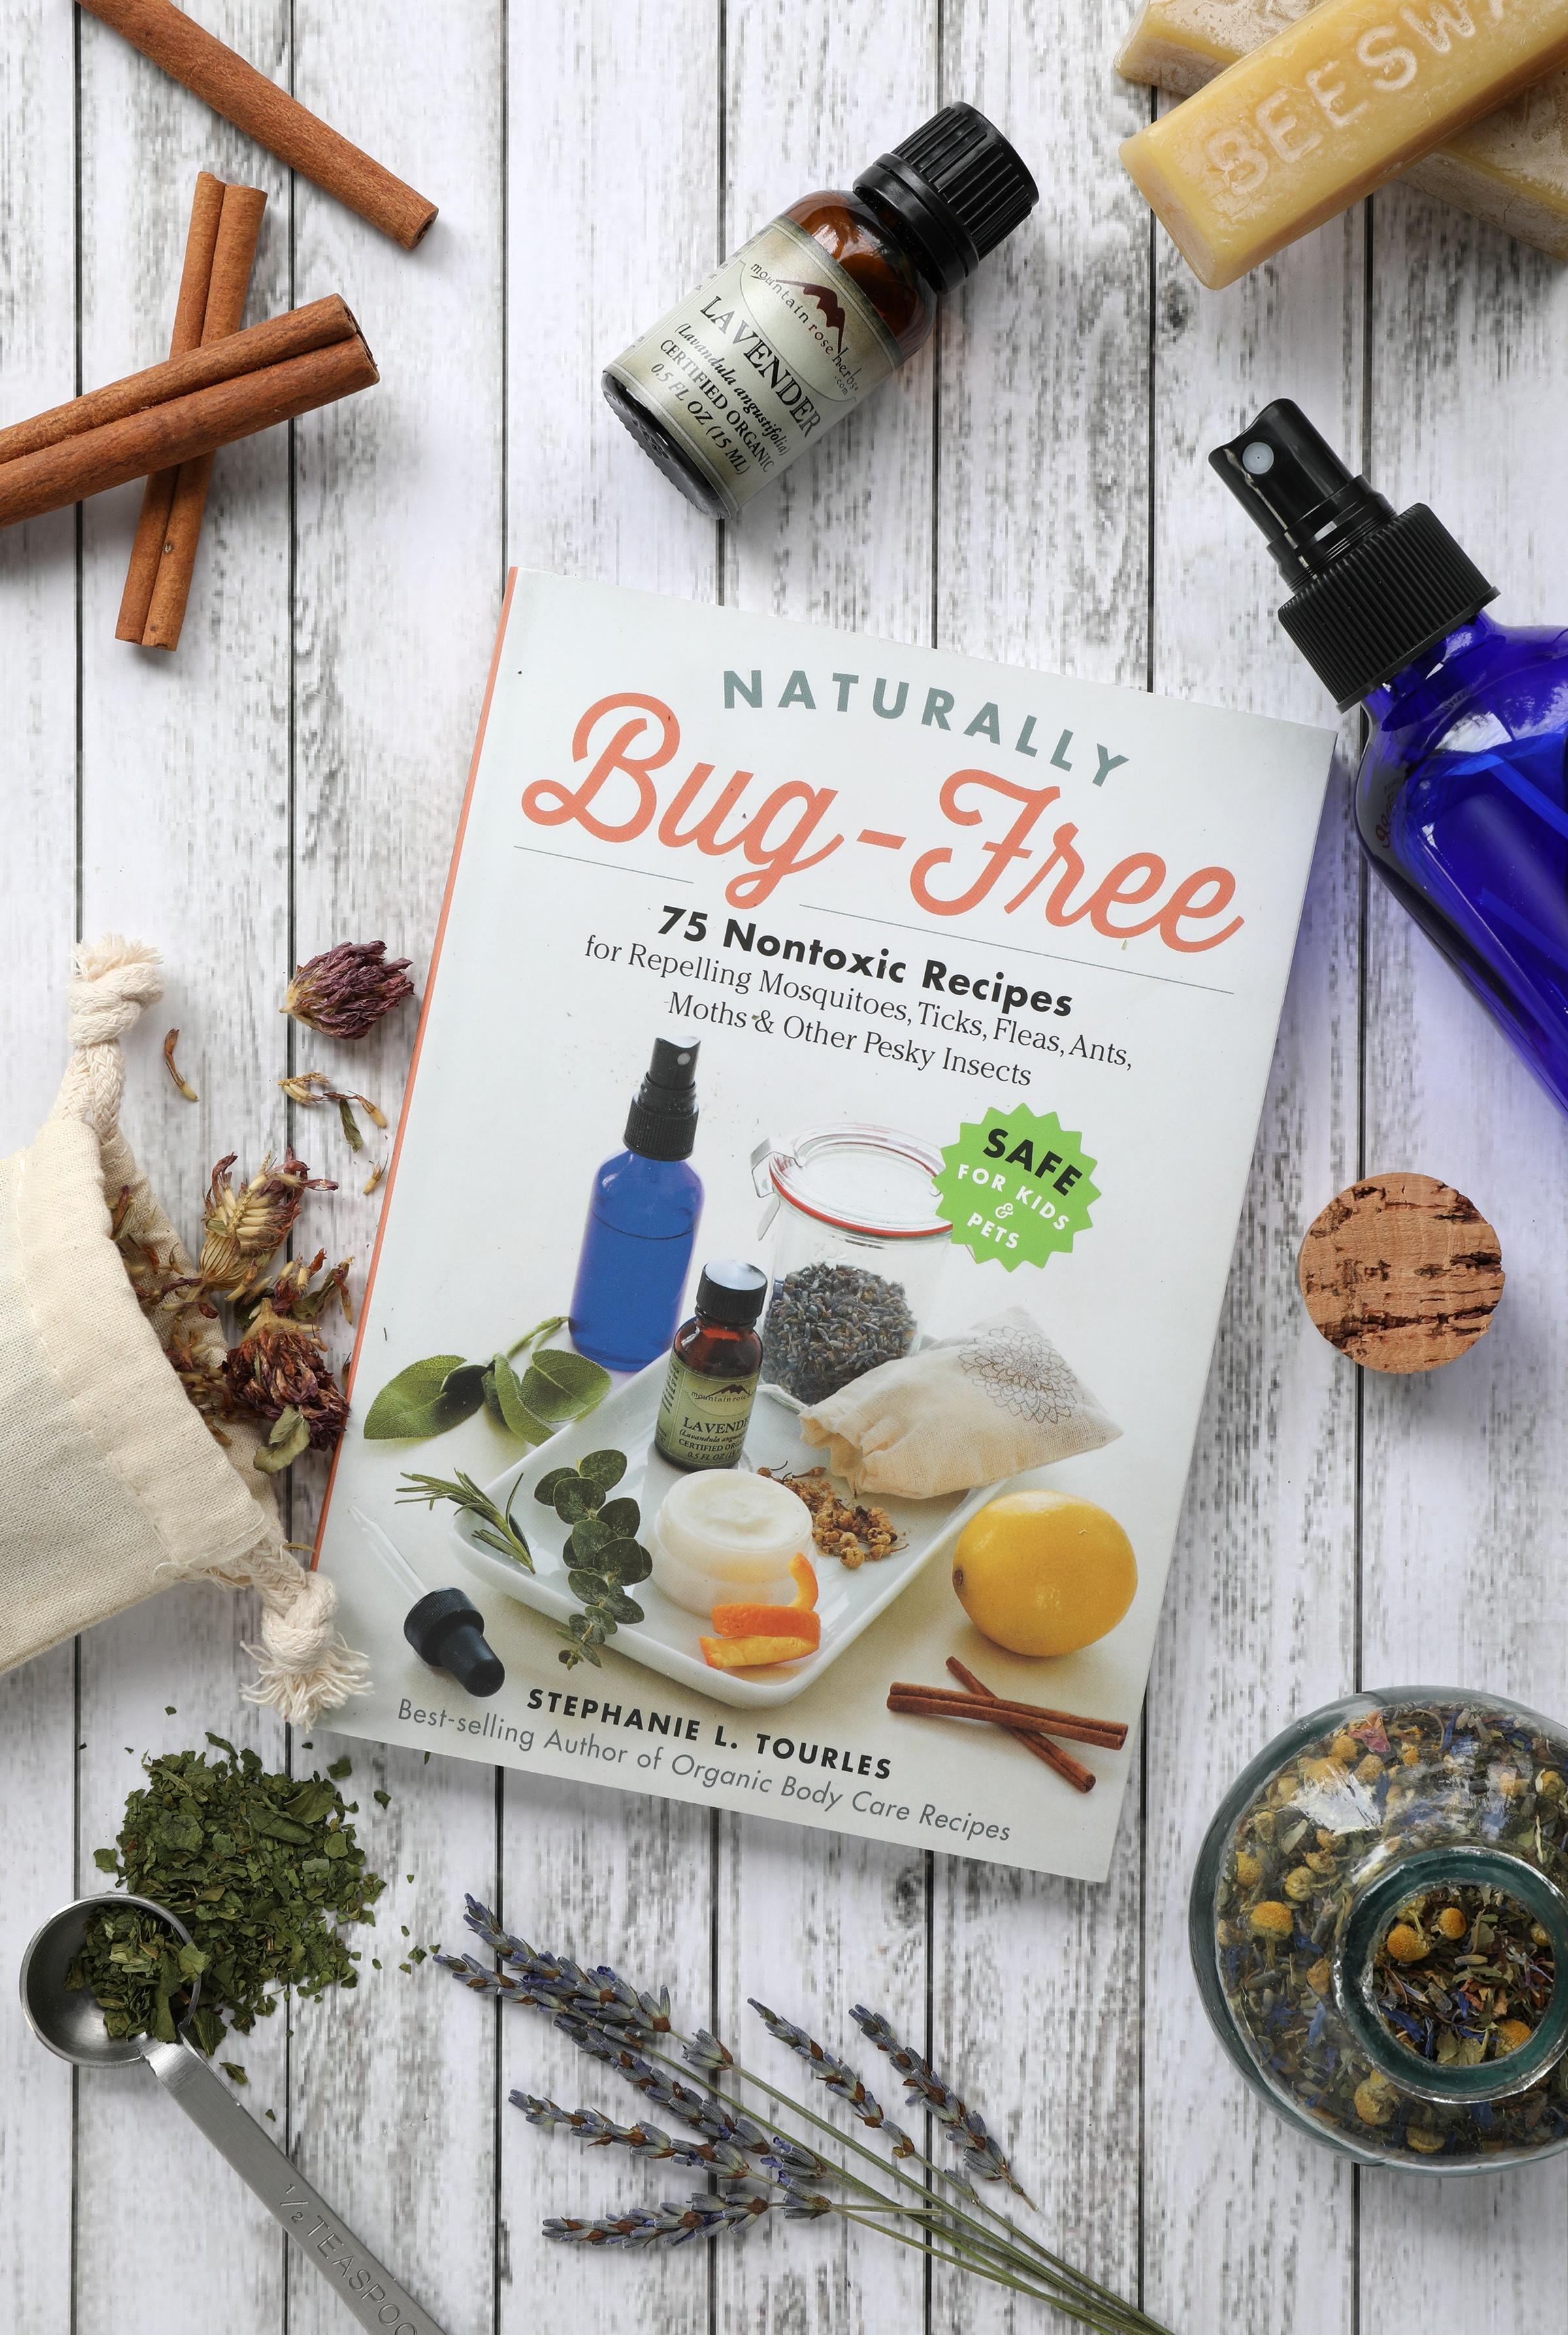 Naturally Bug Gree Recipe Book by Stephanie Tourles sitting around dried herbs and essential oils and beeswax